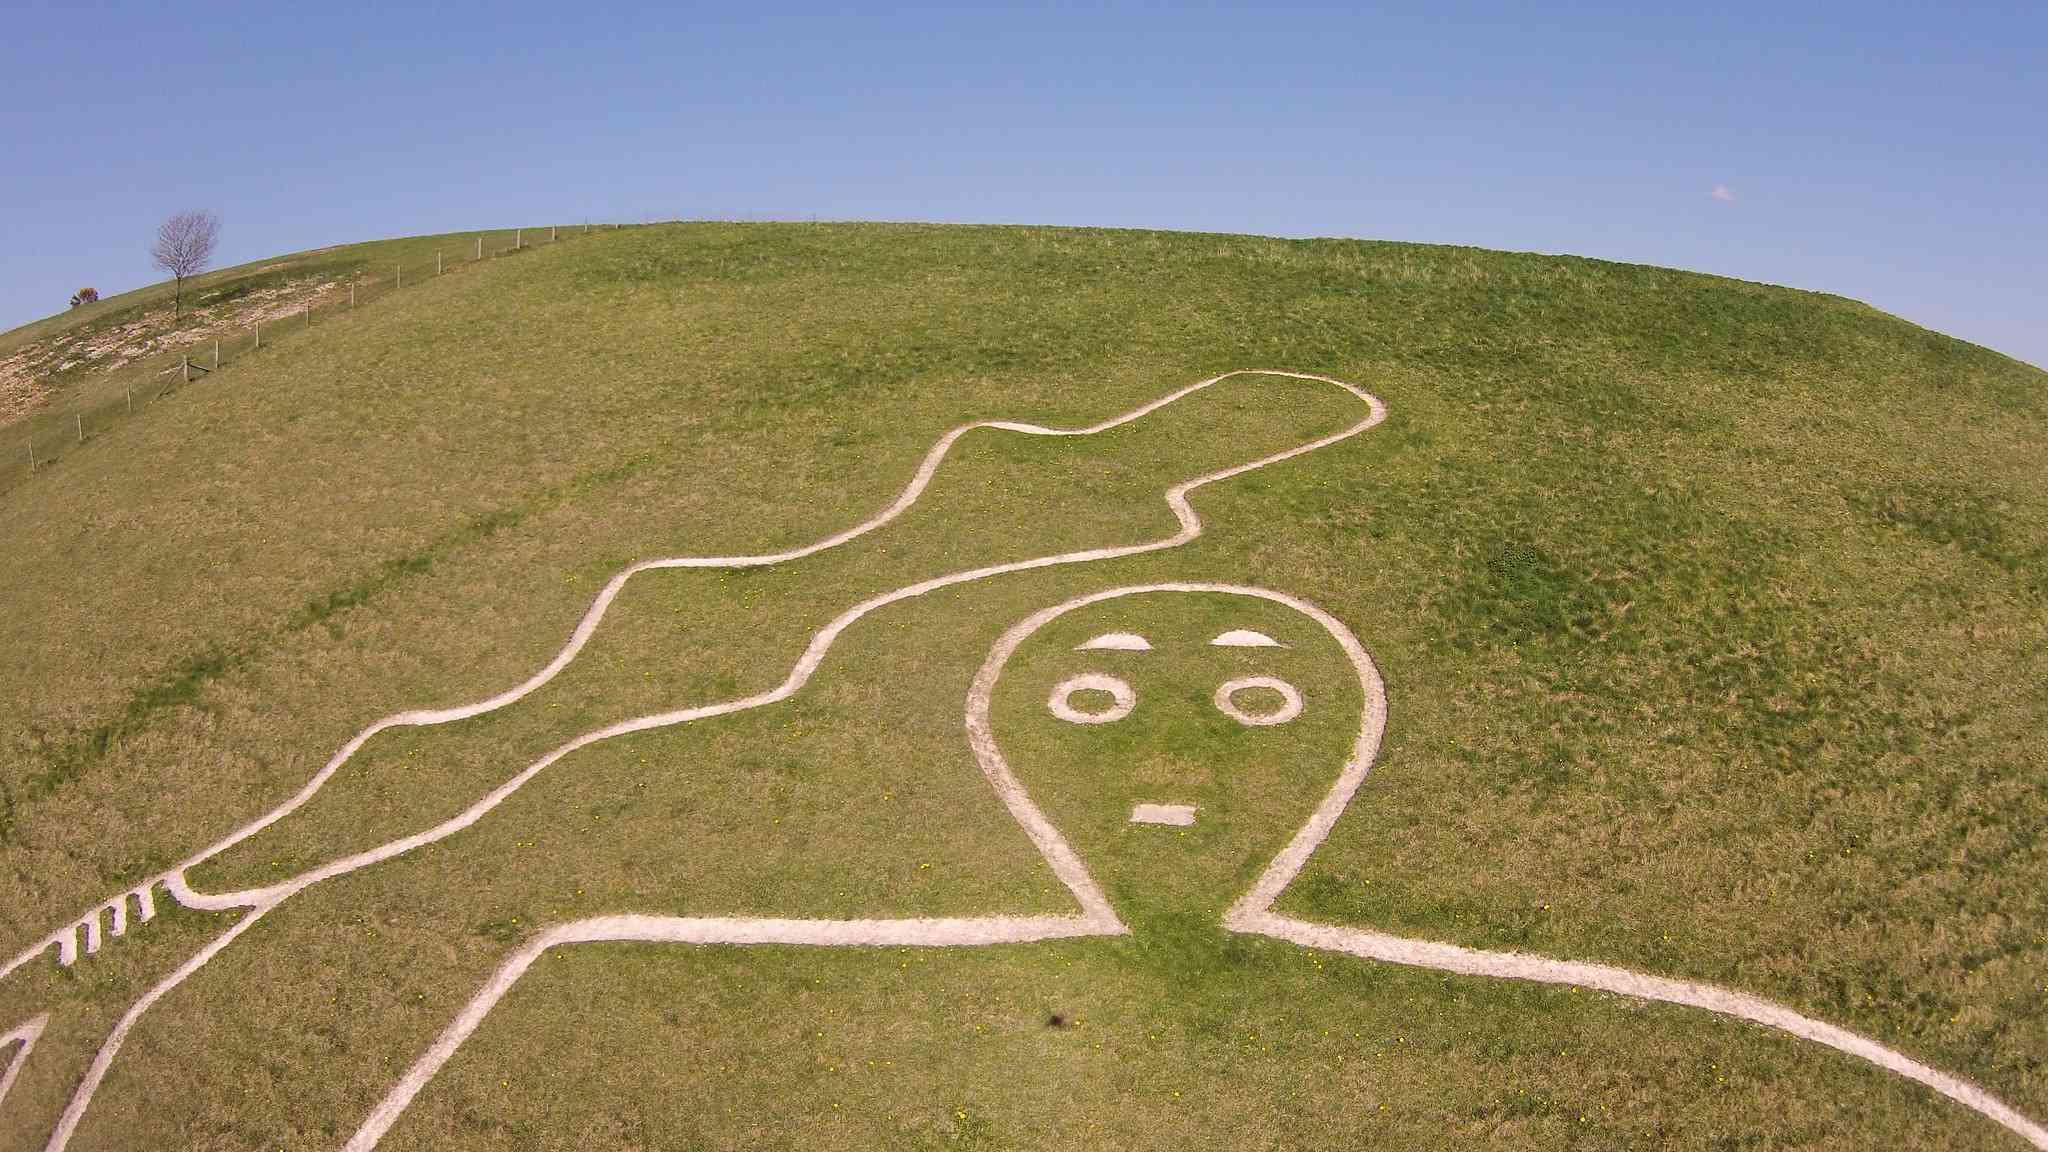 Close-up of head and shoulders of of Cerne Abbas Giant hill figure holding a large club on a green hill beneath a bright blue sky